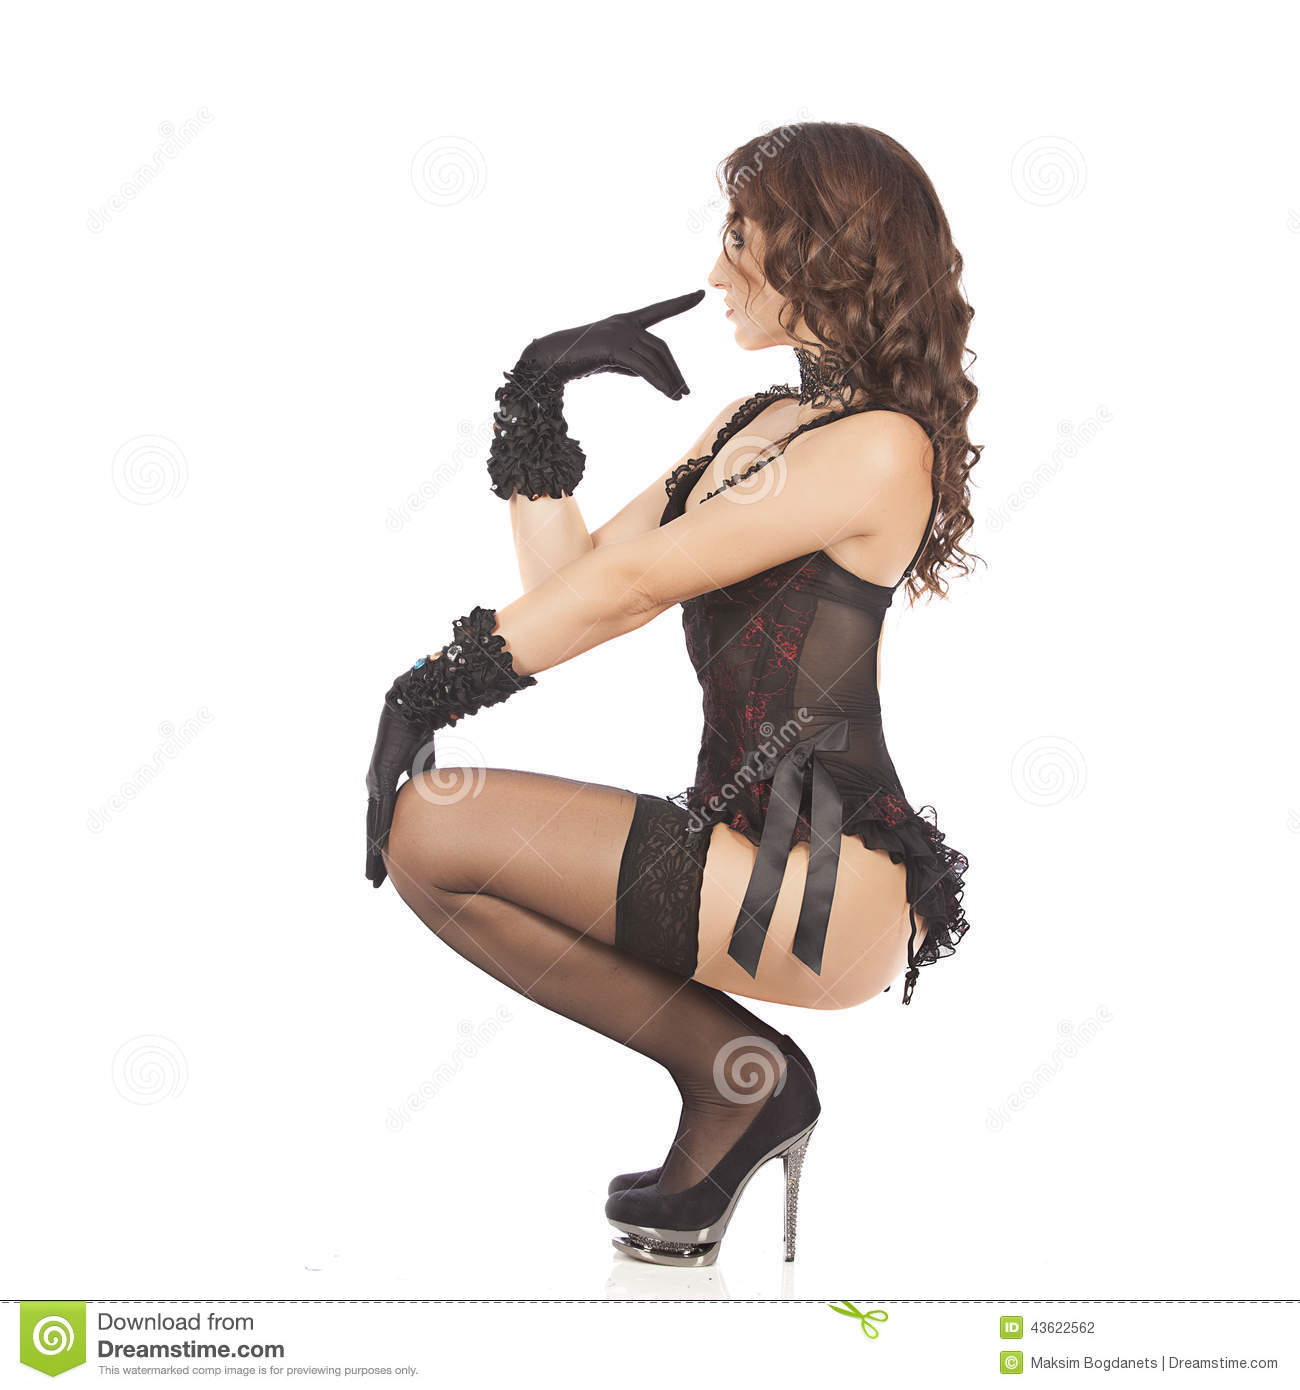 Download One Burlesque Dancer Woman Stripper Showgirl Stock Photo Image Of Fashion Burlesque